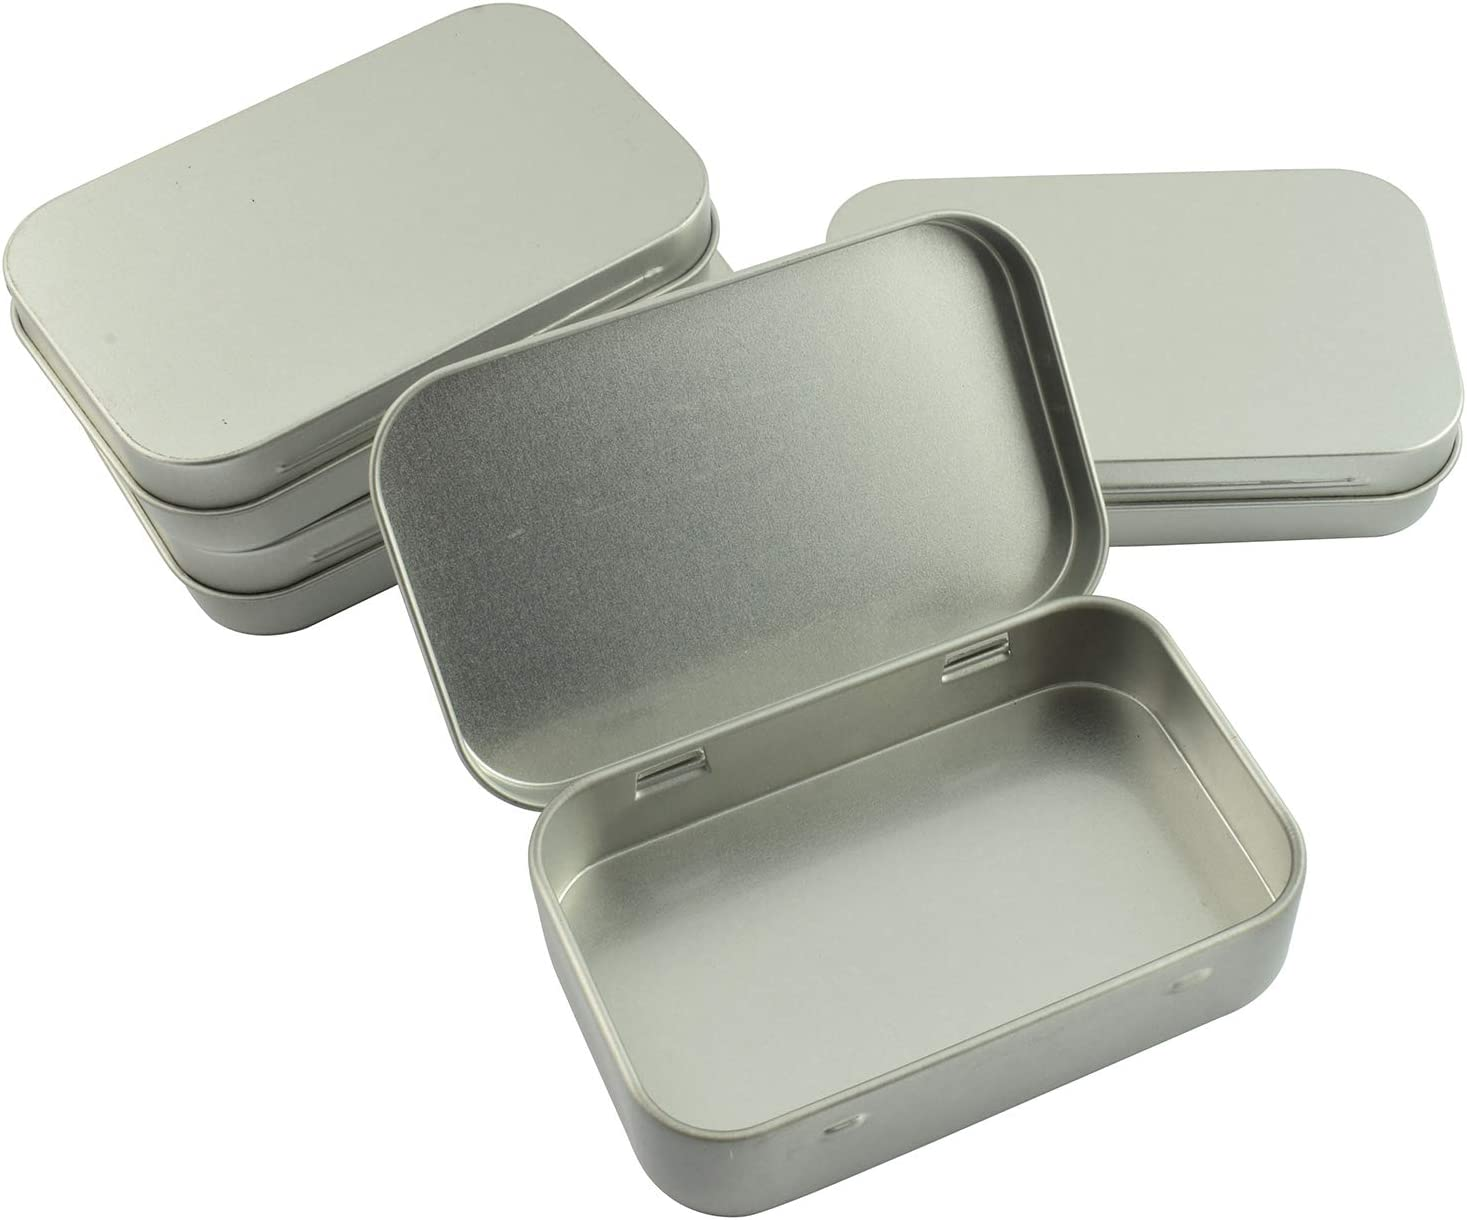 Partstock 4pcs Rectangular Hinged Metal Storage Box Container with Lid,Multipurpose Portable Small Tin Boxes Empty Containers for Home Travel Outdoor Activities(Silver)